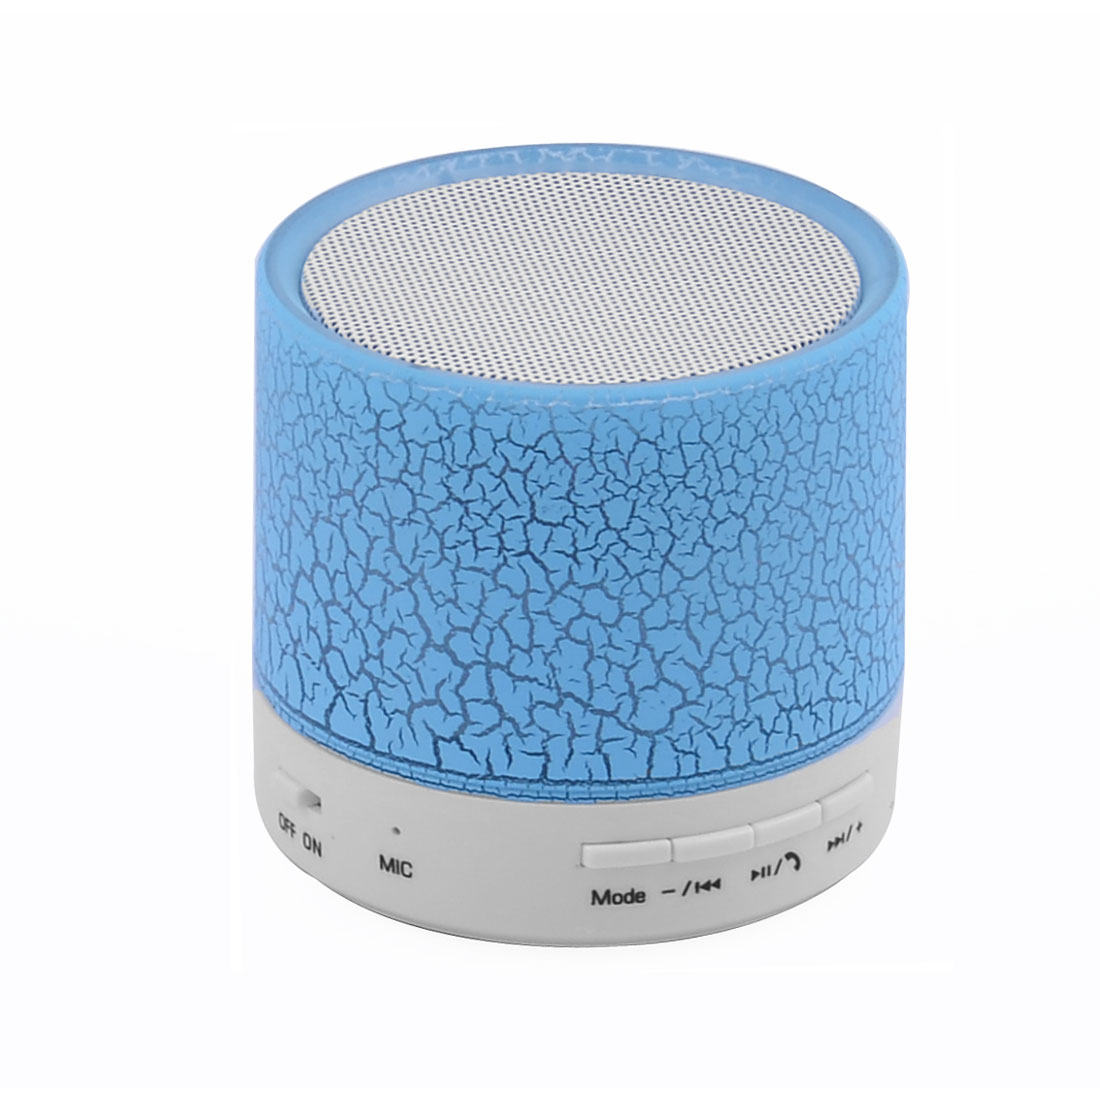 Laptop Mini Wireless bluetooth Support Micro SD Card Stereo Speaker Blue